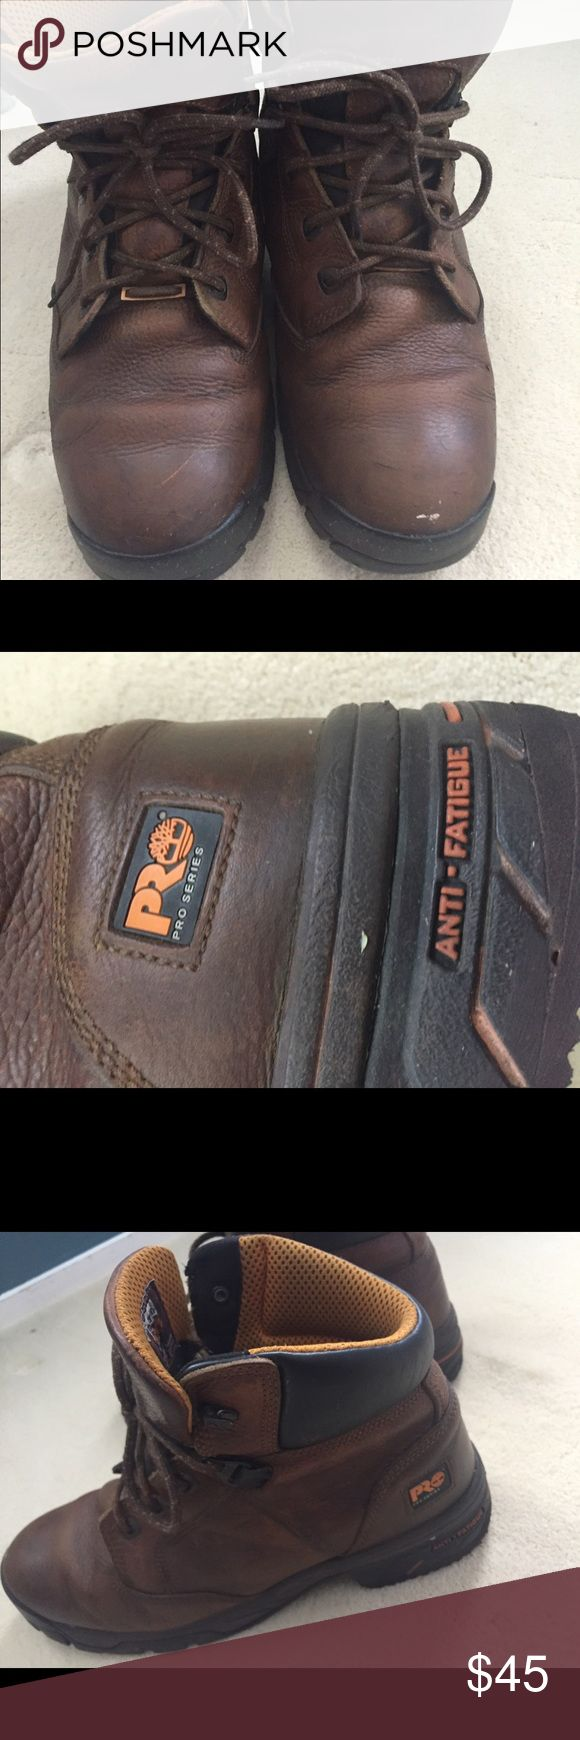 TIMBERLAND PRO SERIES WORK BOOTS BROWN LEATHER Good used condition Timberland Shoes Boots